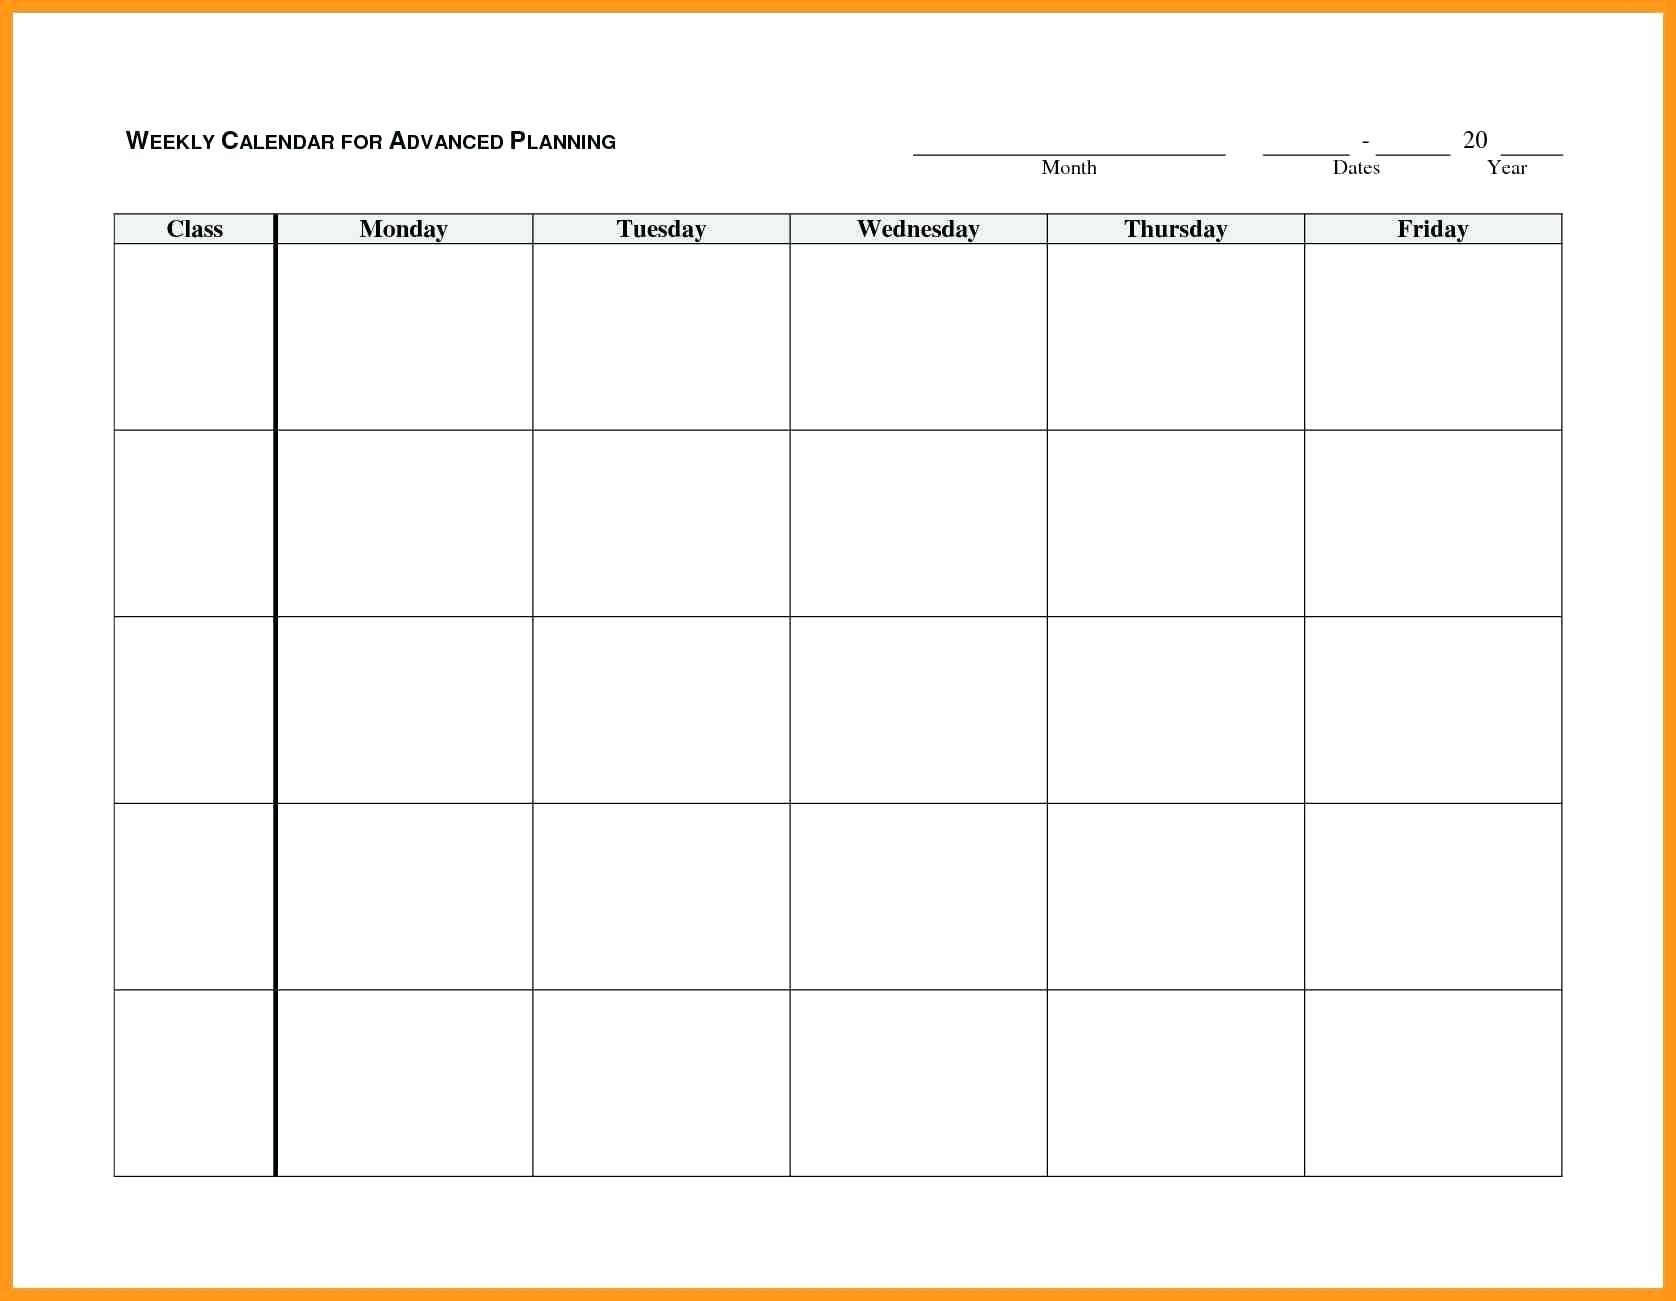 Blank Weekly Calendar Monday Through Friday Schedule Template Sunday intended for Monday Through Friday Schedule Printable